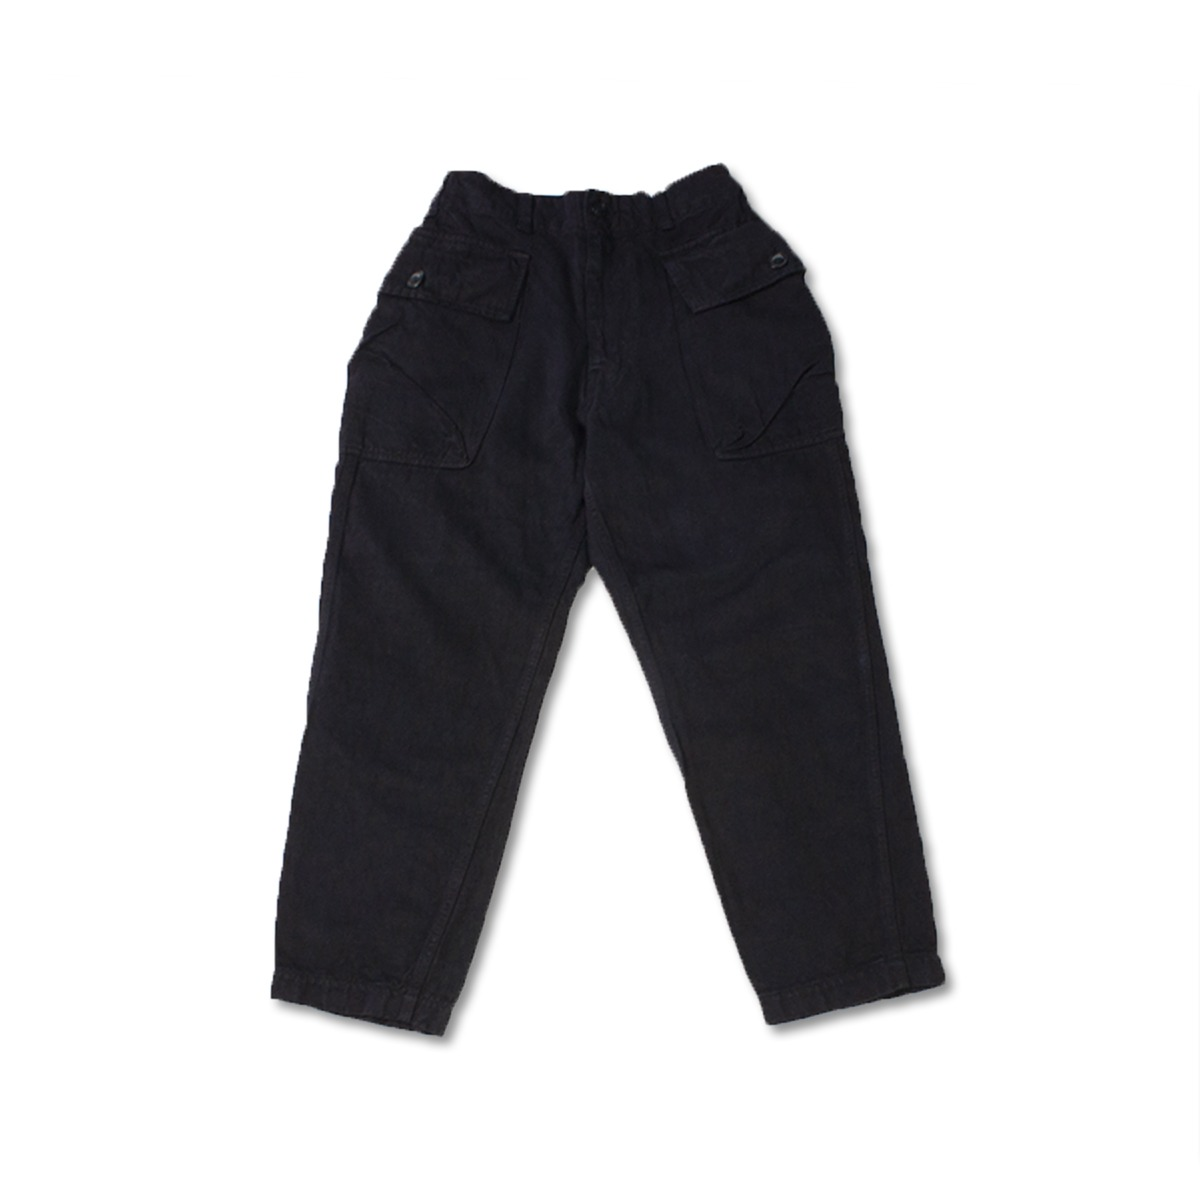 [SAGE DE CRET] 20FW MILITARY PANTS 'BLACK'